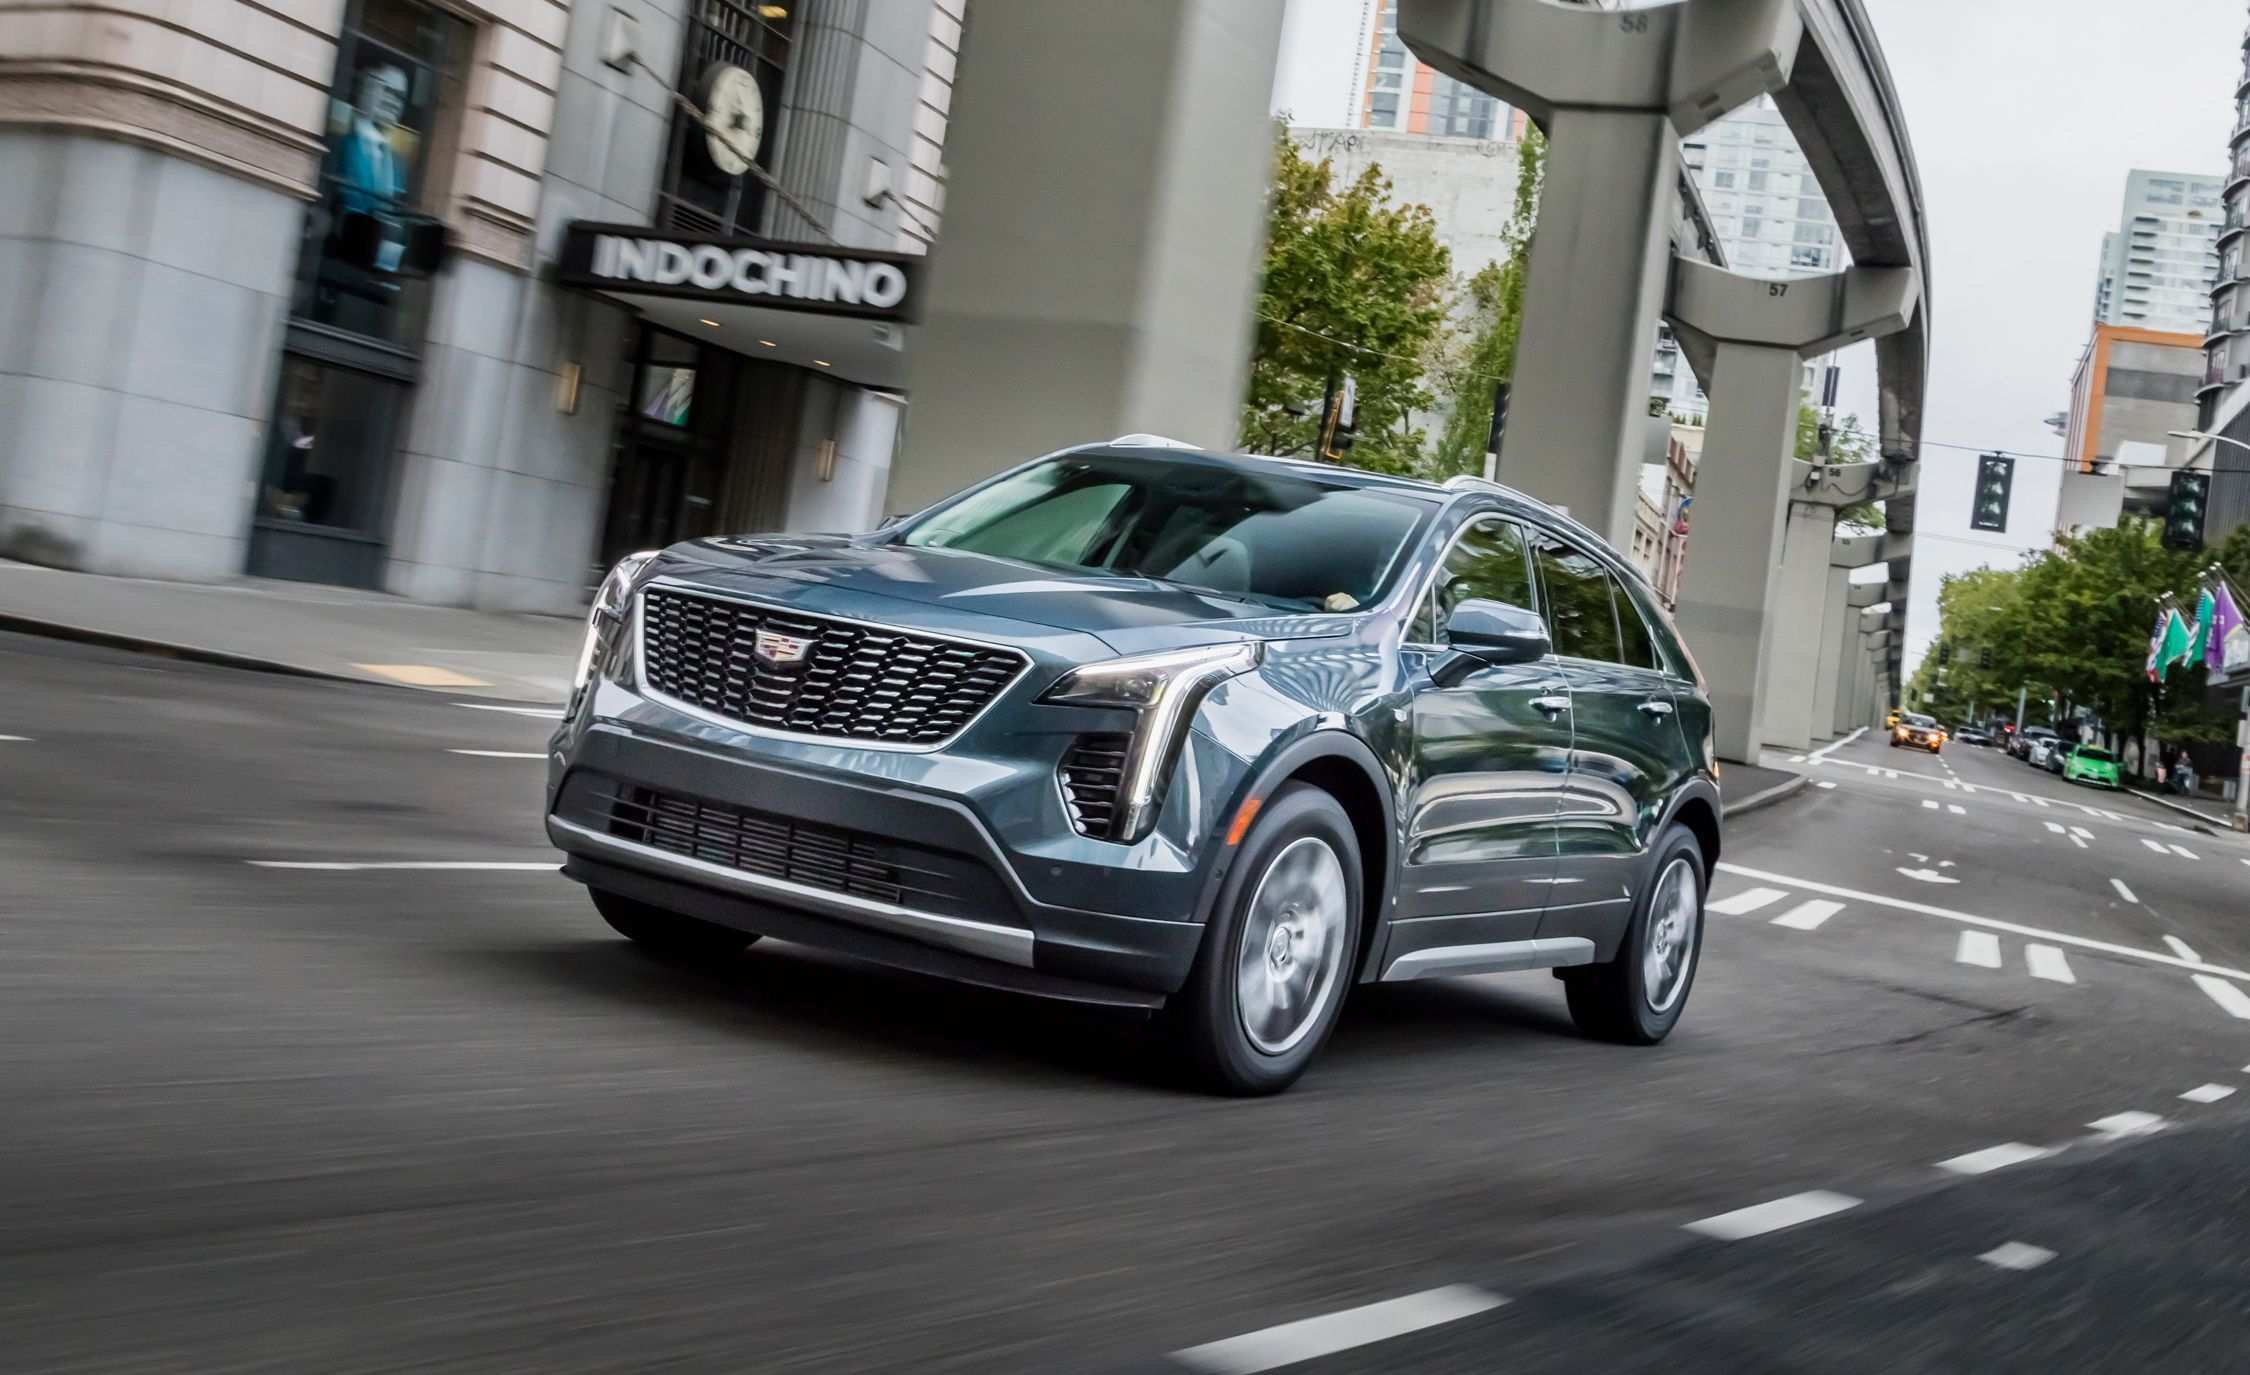 42 Great 2019 Cadillac Lineup Price and Review by 2019 Cadillac Lineup